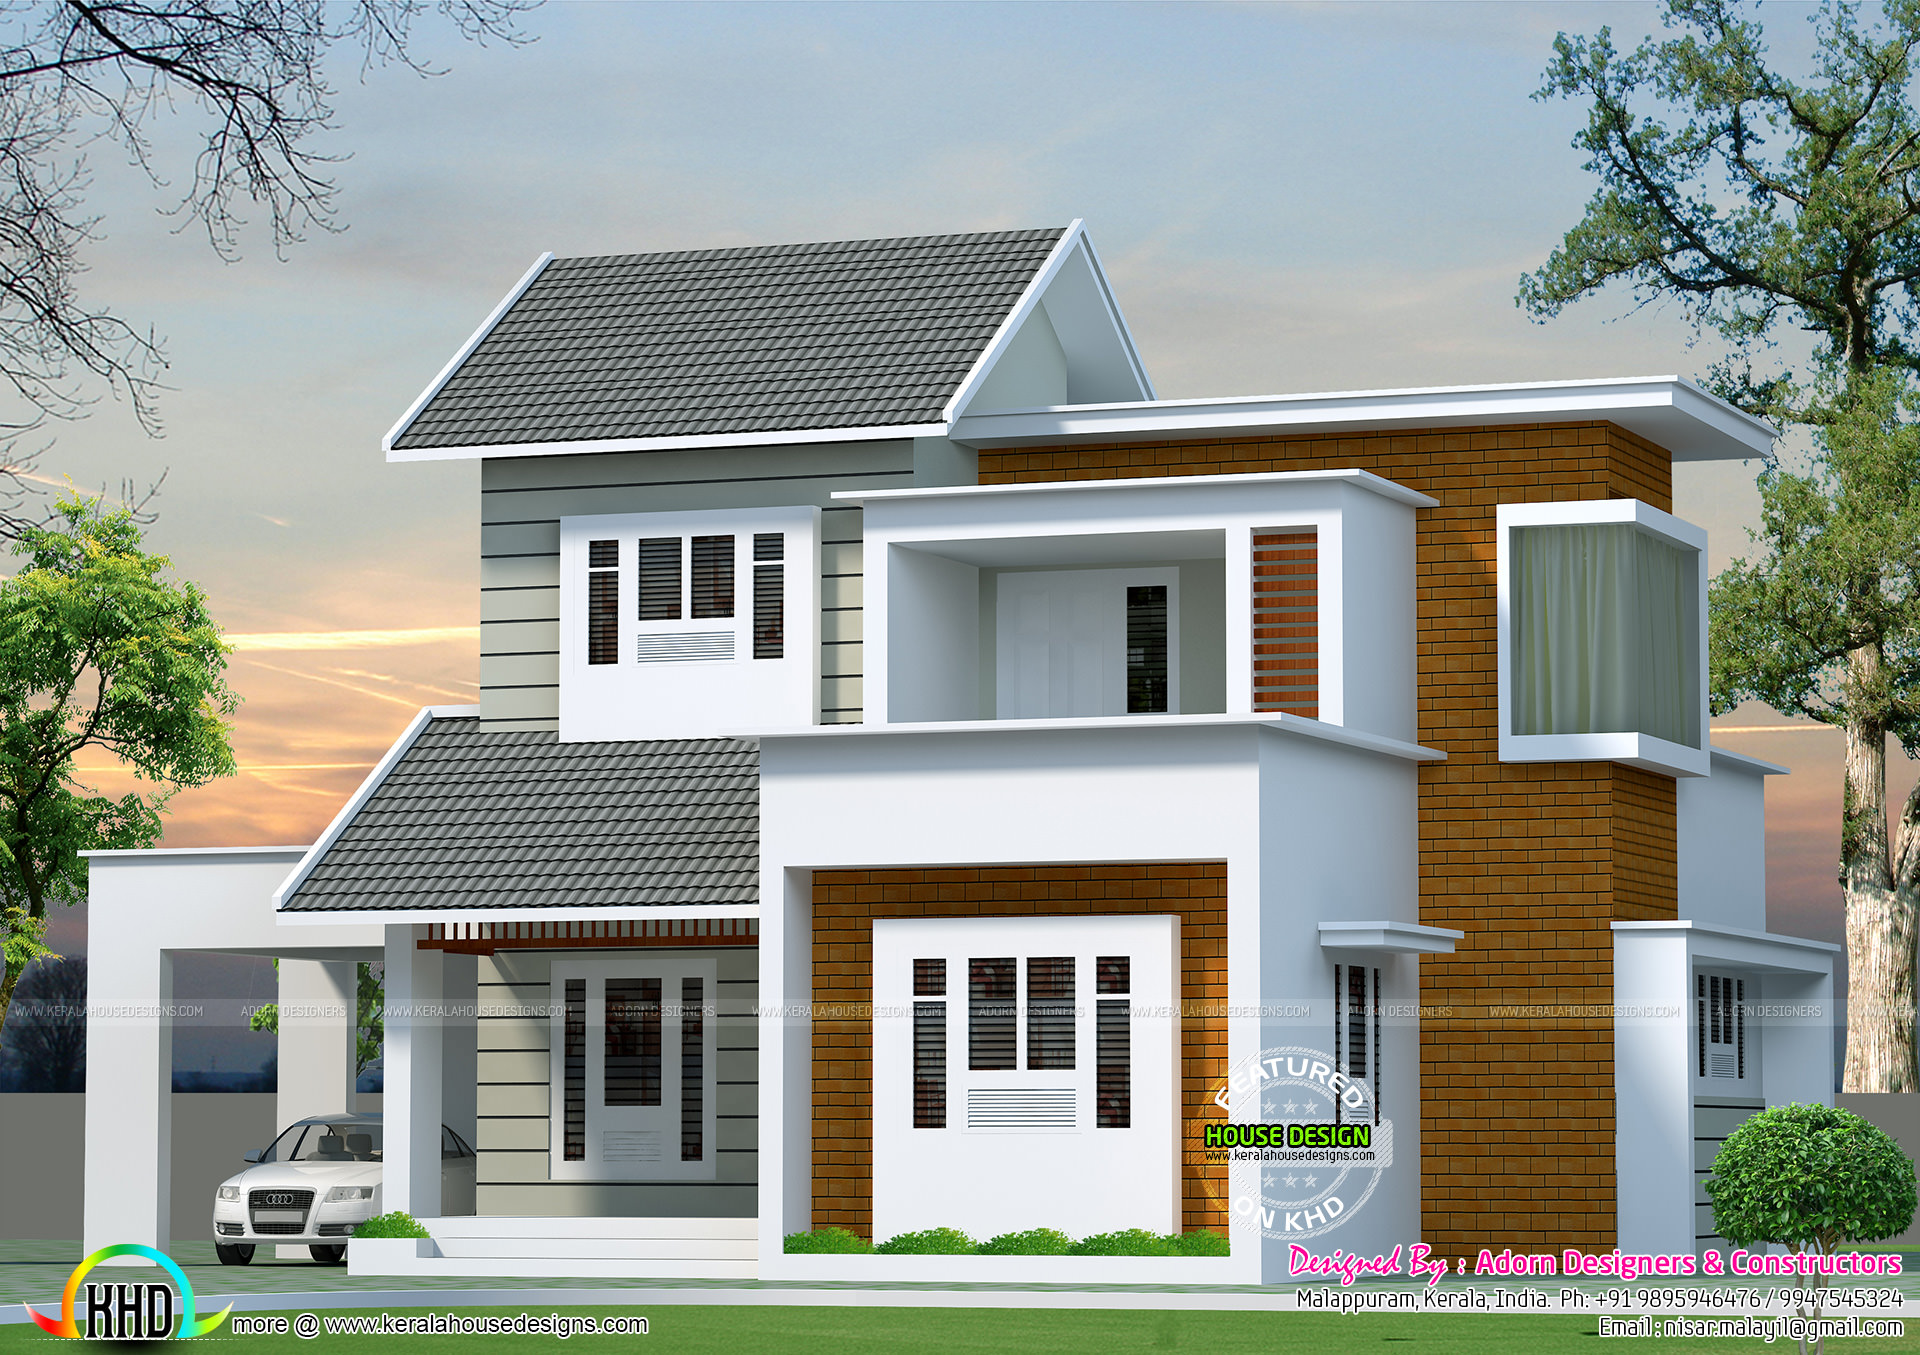 October 2016 kerala home design and floor plans House plans india with two bedrooms